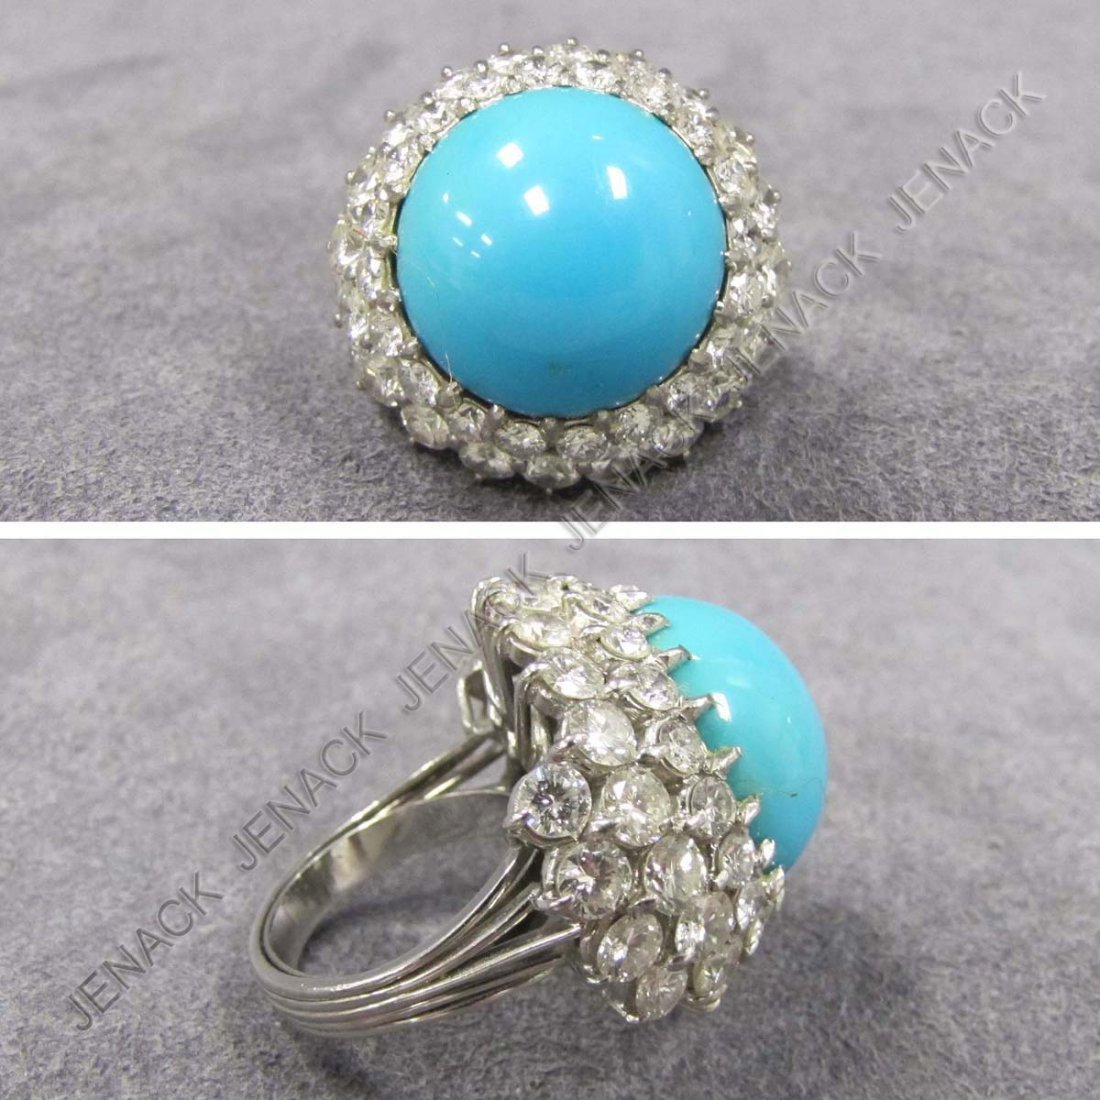 116: WHITE GOLD (TESTS 18K) TURQUOISE AND DIAMOND RING